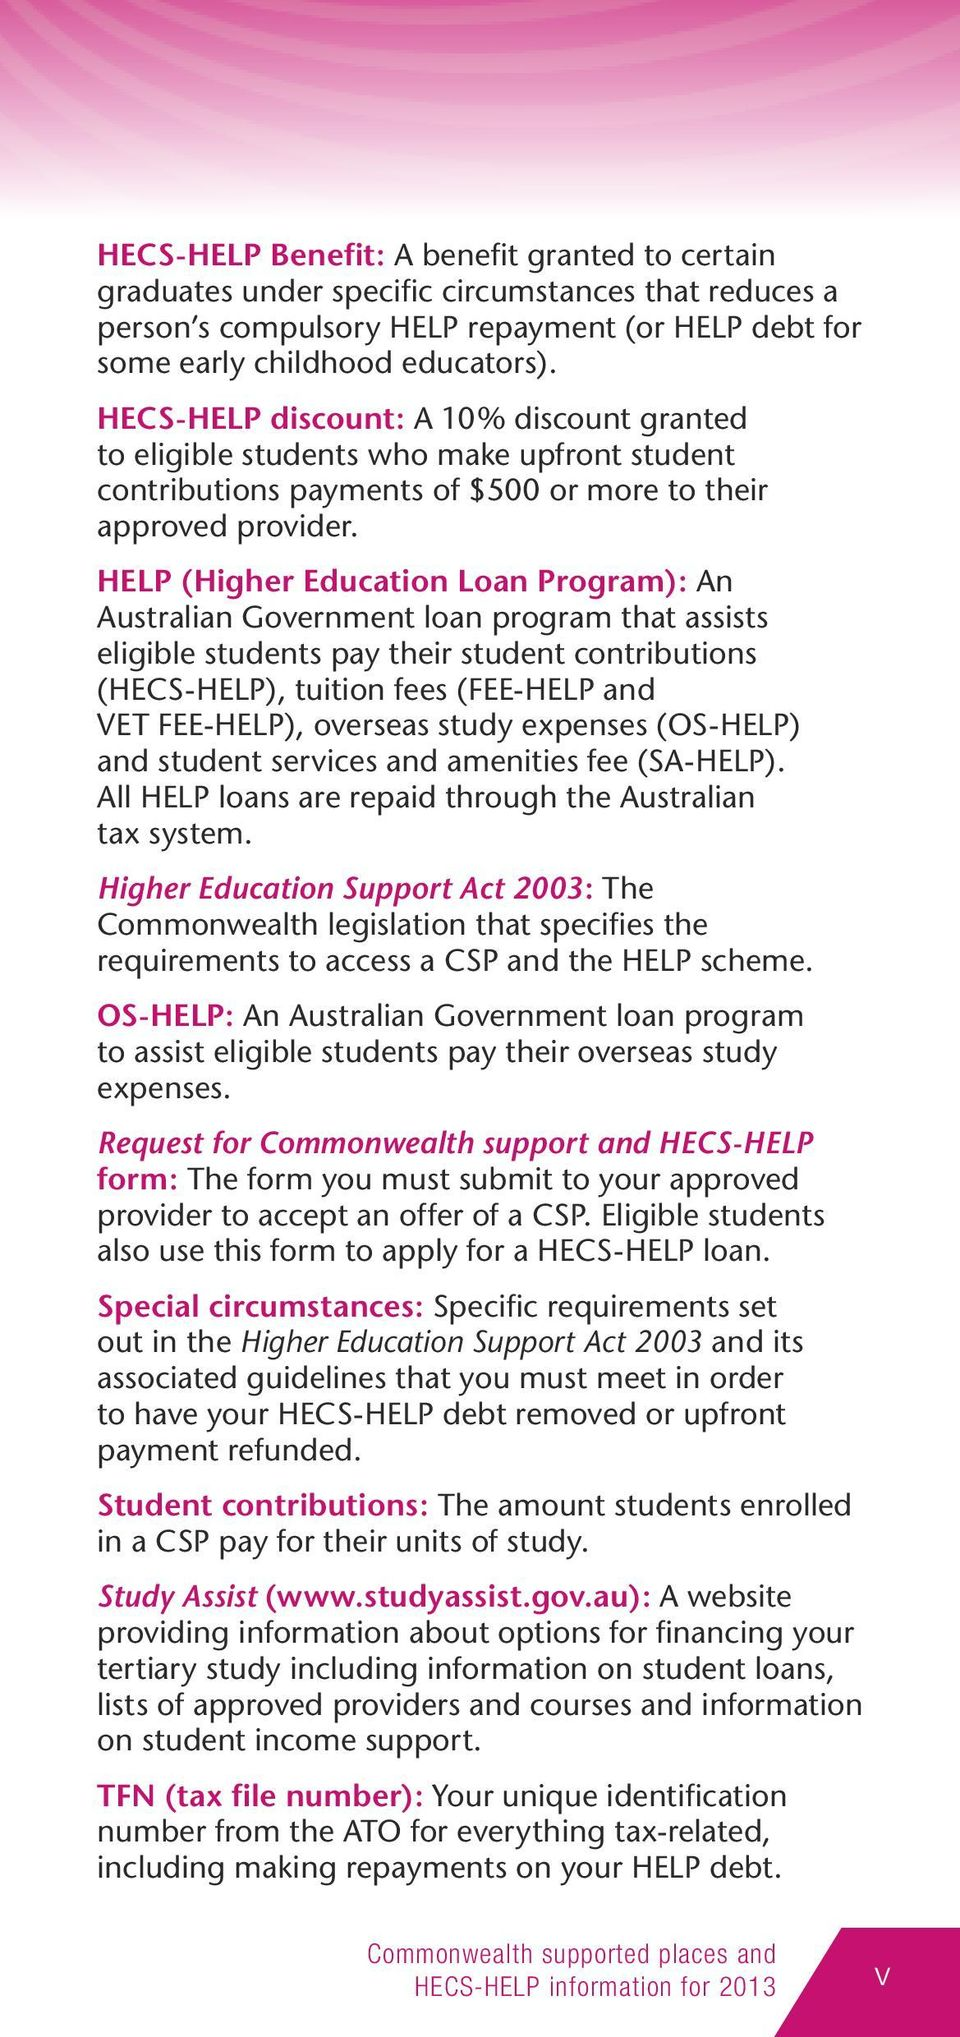 HELP (Higher Education Loan Program): An Australian Government loan program that assists eligible students pay their student contributions (HECS-HELP), tuition fees (FEE-HELP and VET FEE-HELP),